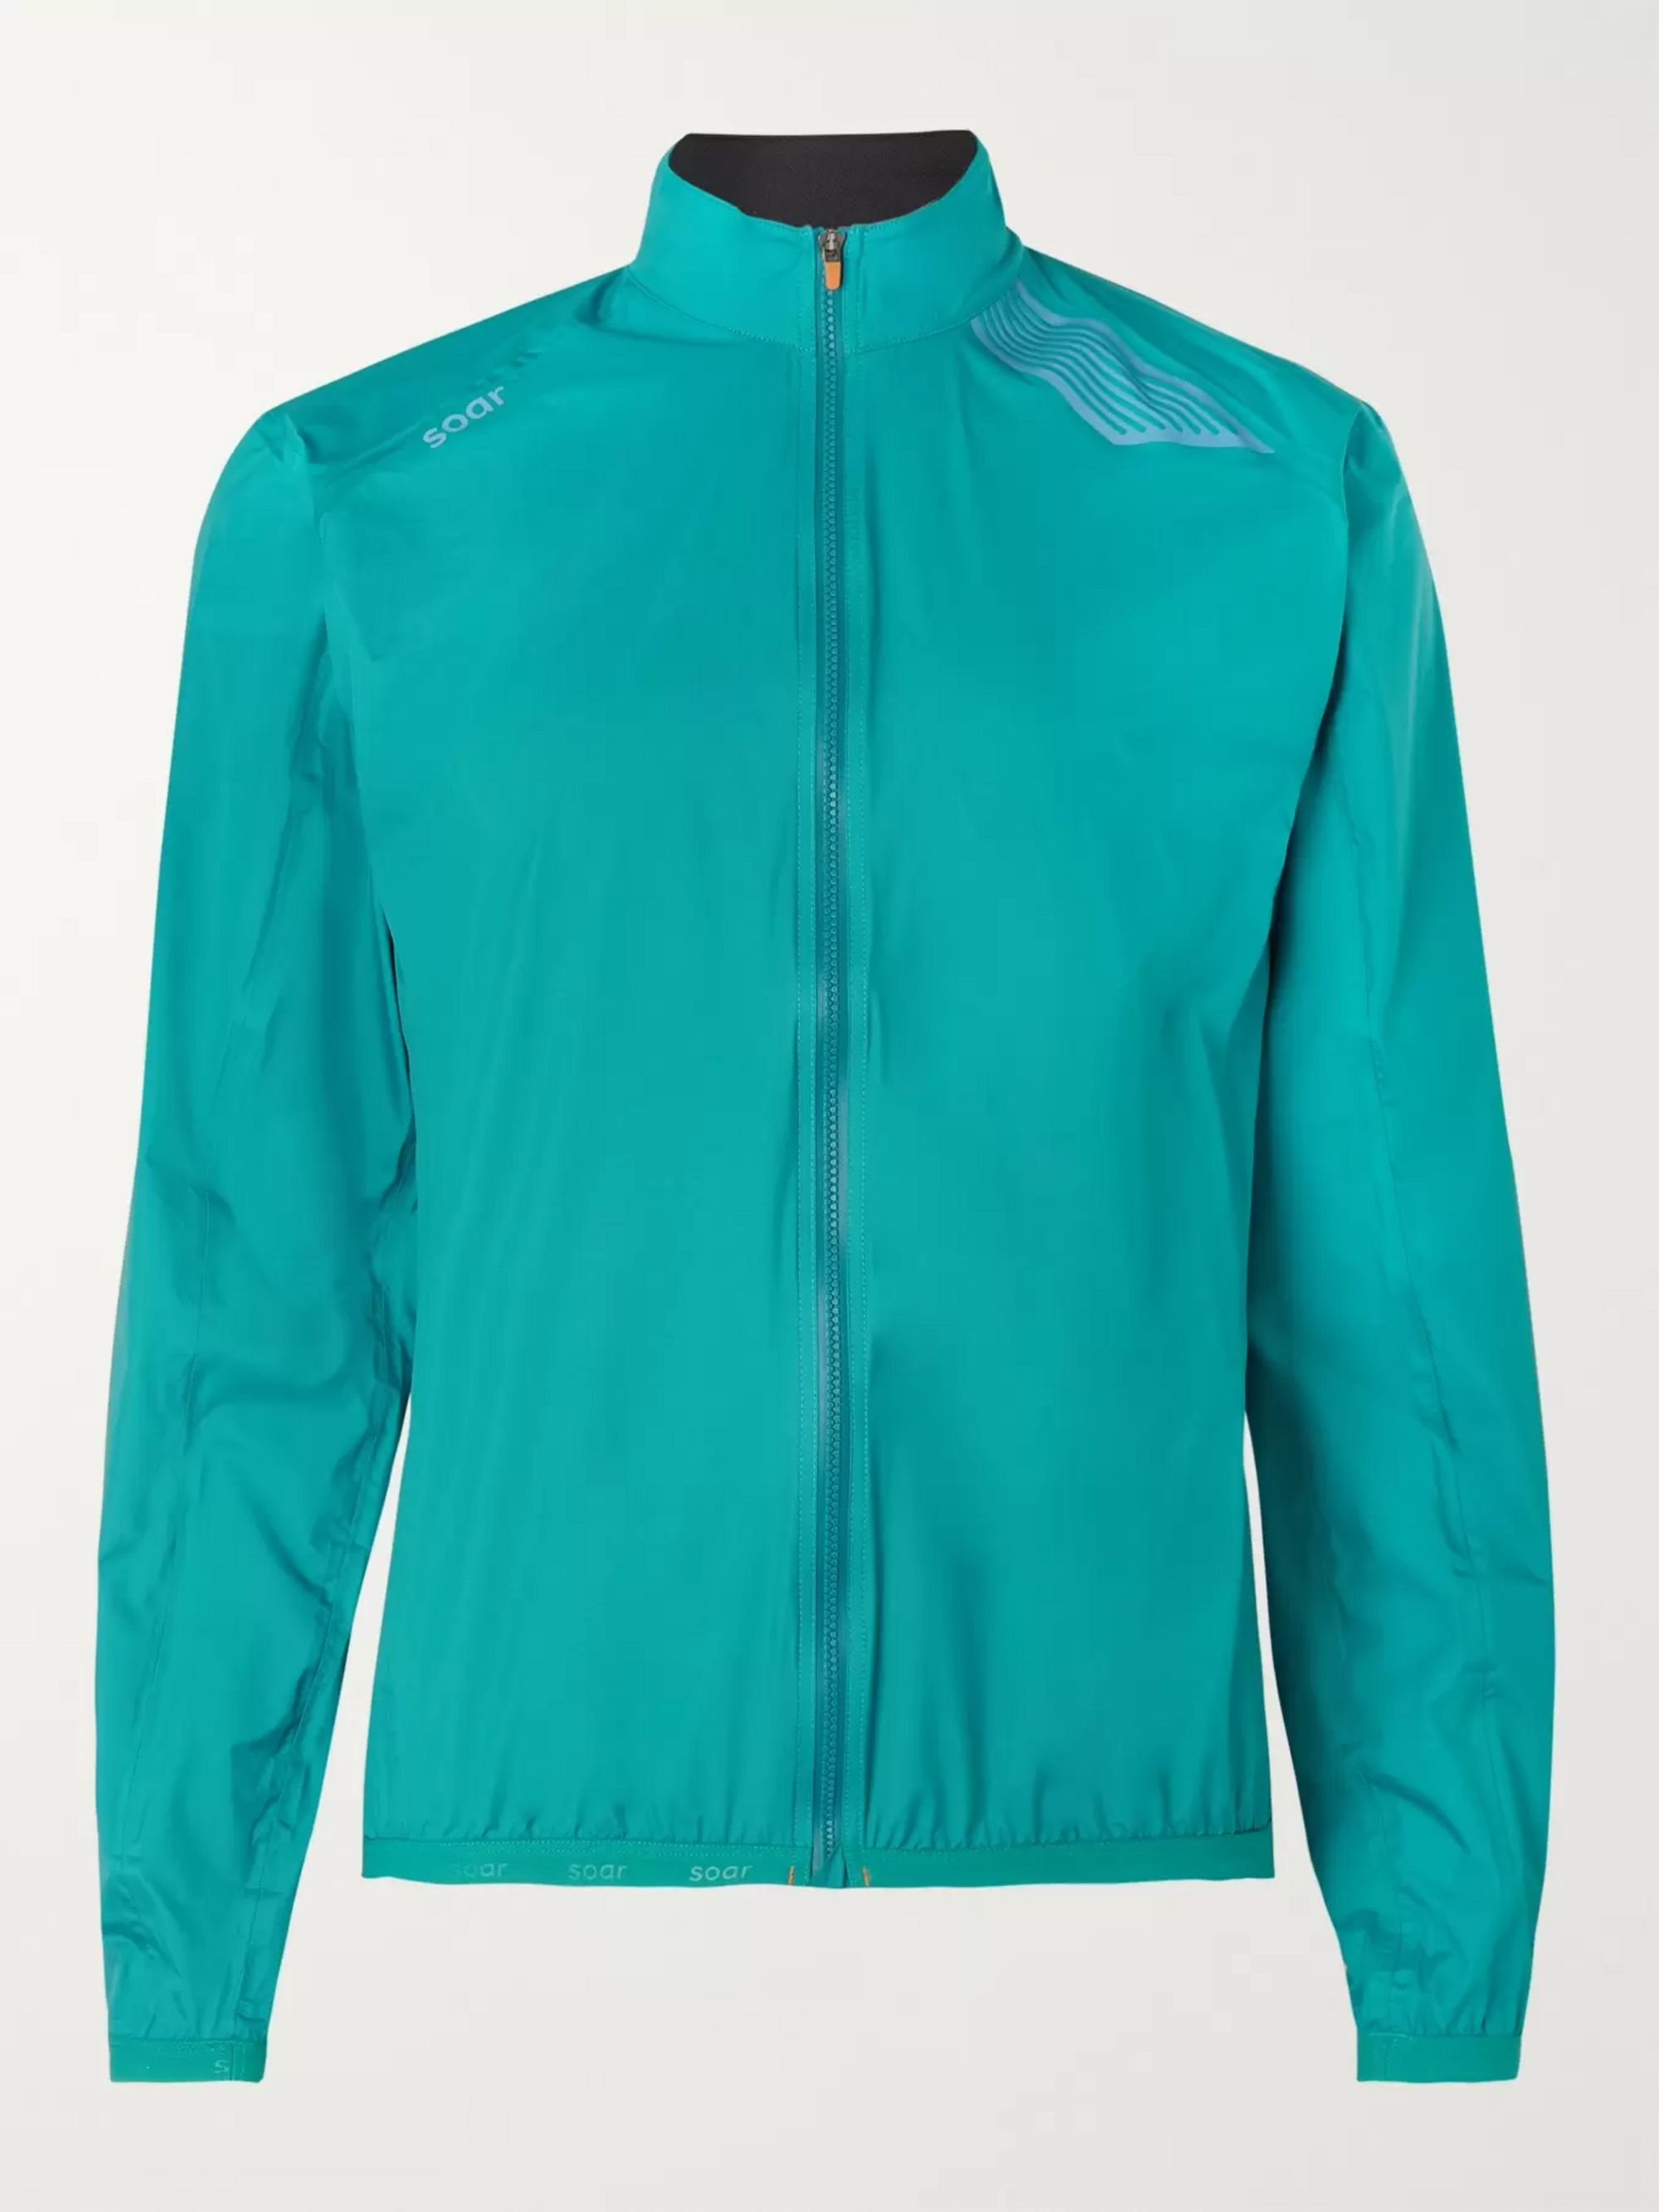 Soar Running Ultra Rain 2.0 Jacket